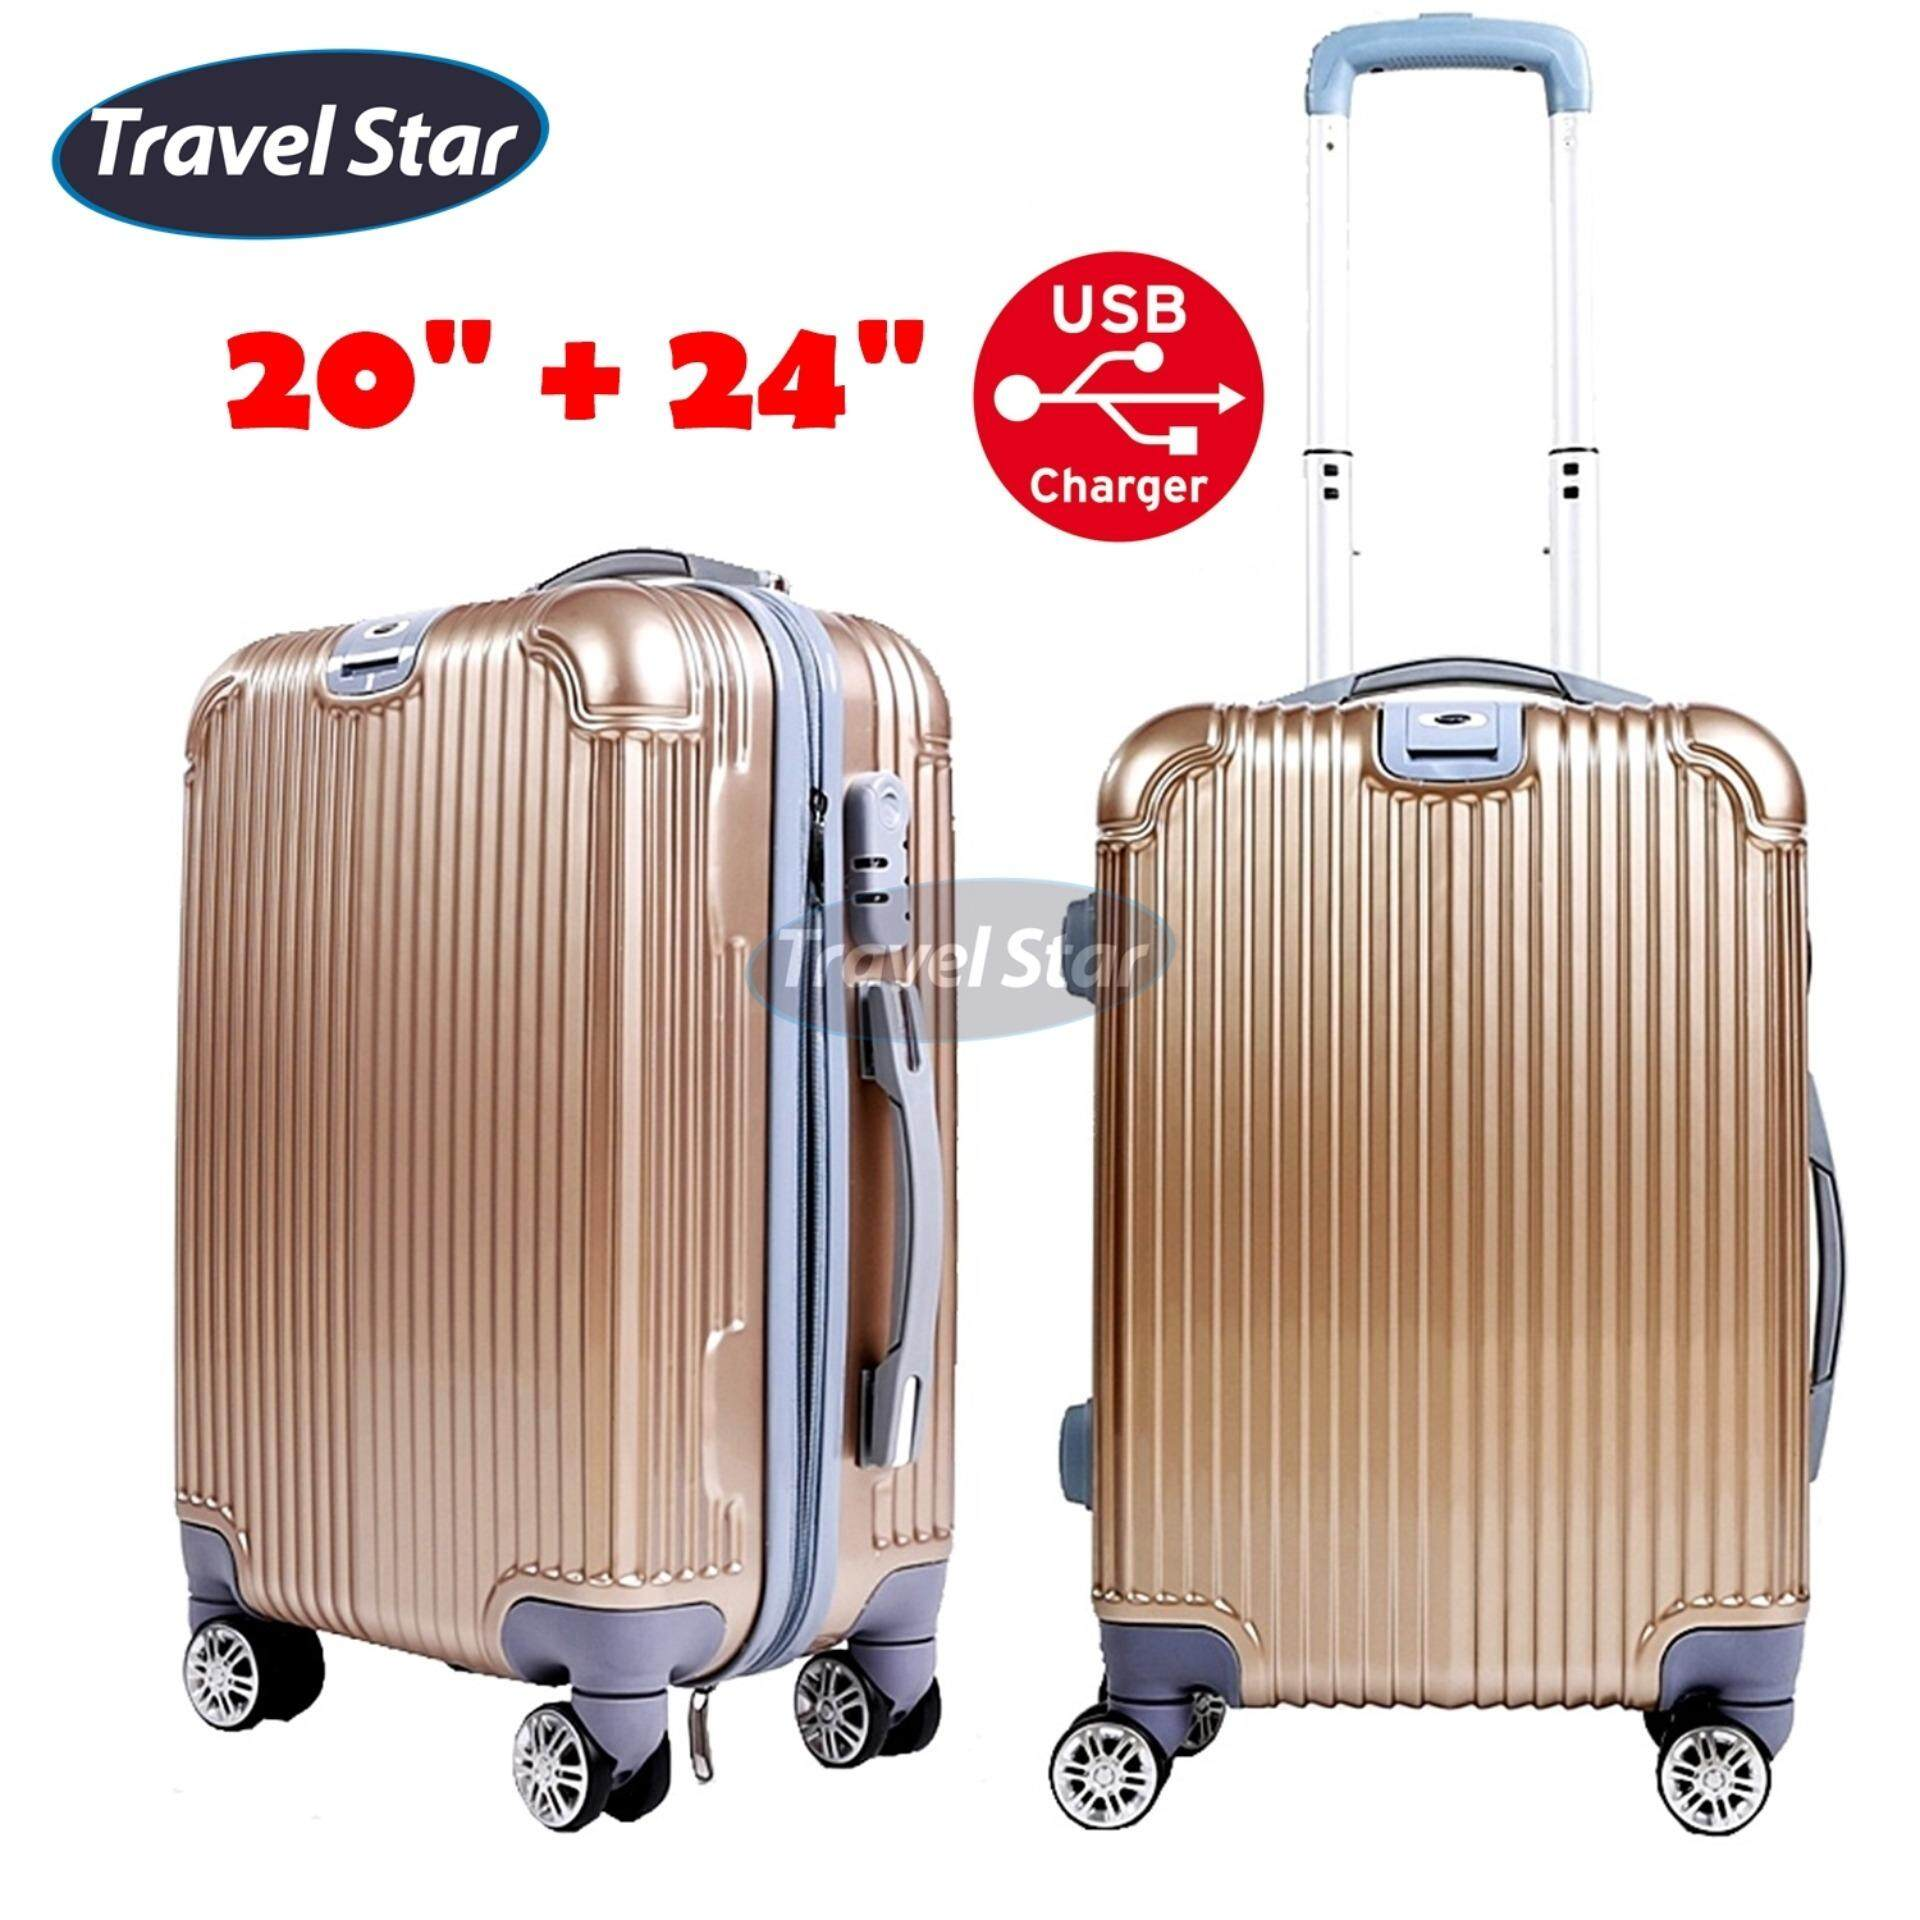 TRAVEL STAR QZ002 Elegant 20 Inch + 24 Inch Hard Case Luggage Bagasi Sets With External Charging Port- Gold